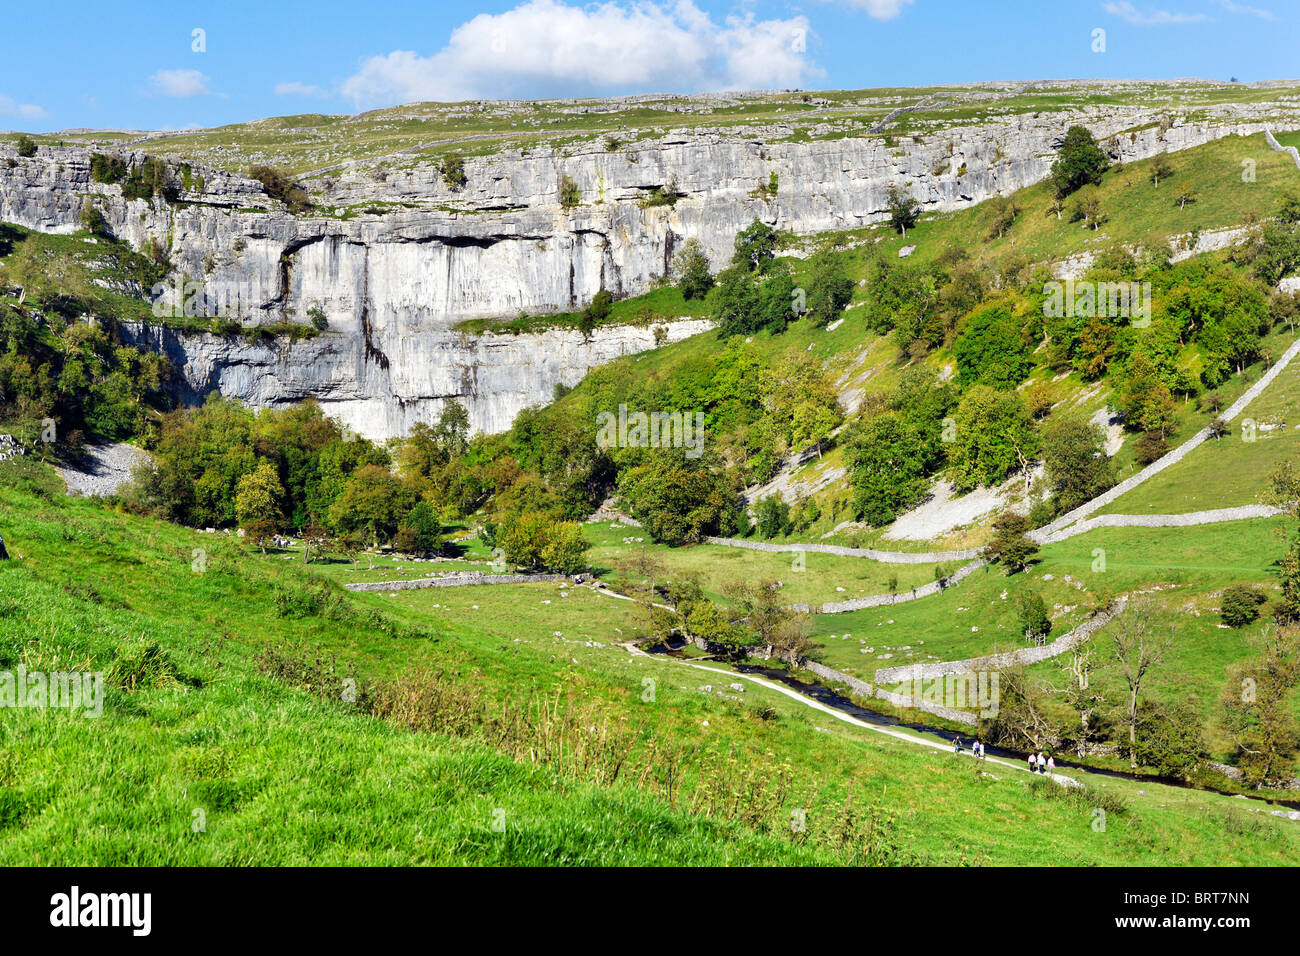 Malham Cove near the village of Malham, Wharfedale, Yorkshire Dales National Park, England, UK - Stock Image